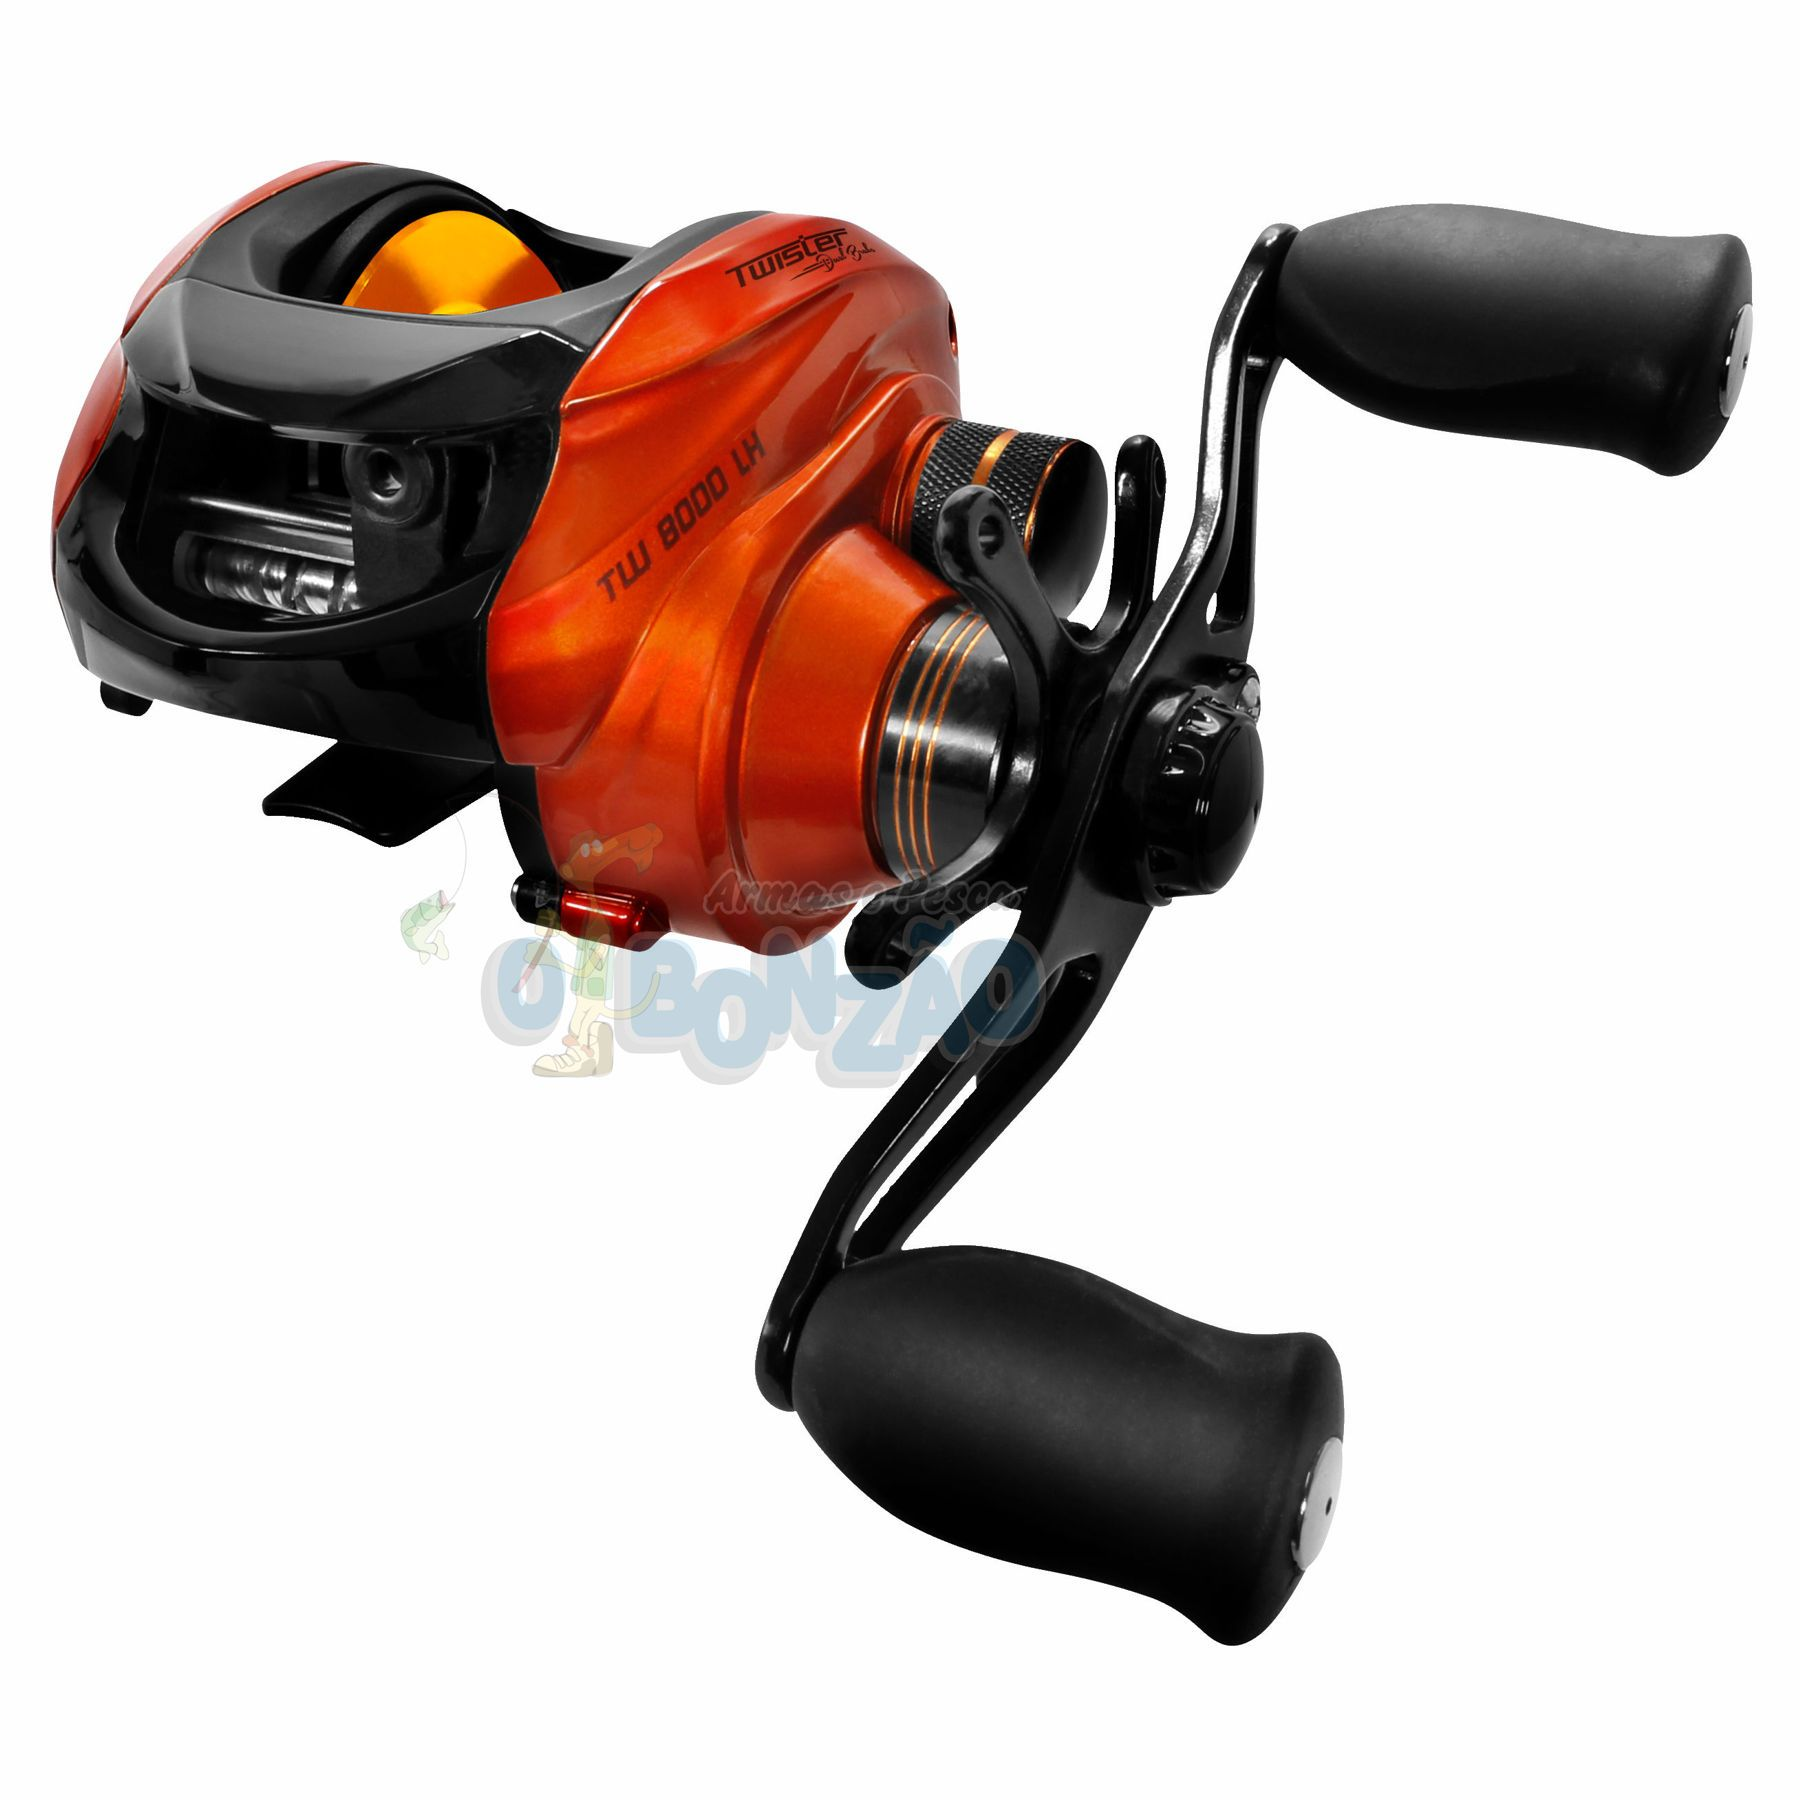 Carretilha Saint Plus Twister Dual Brake 8000LH Esquerda - 8 Rolamentos